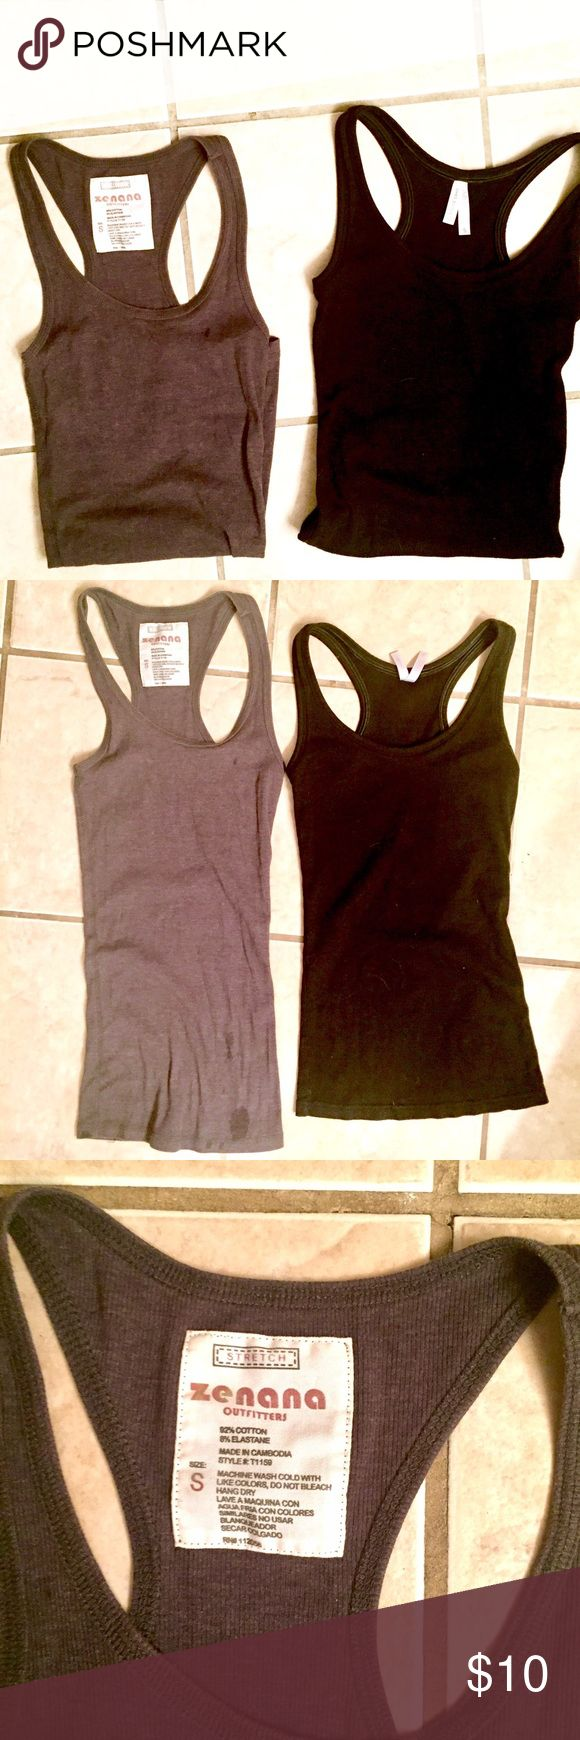 SPORTS RAZORBACK TANK TOP BUNDLE Two essential sports razorback tank tops in Size Small. Dark gray is cotton/elastase by Zenana Outfitters & black is cotton/polyester by Color Story. Zenana Outfitters Tops Tank Tops